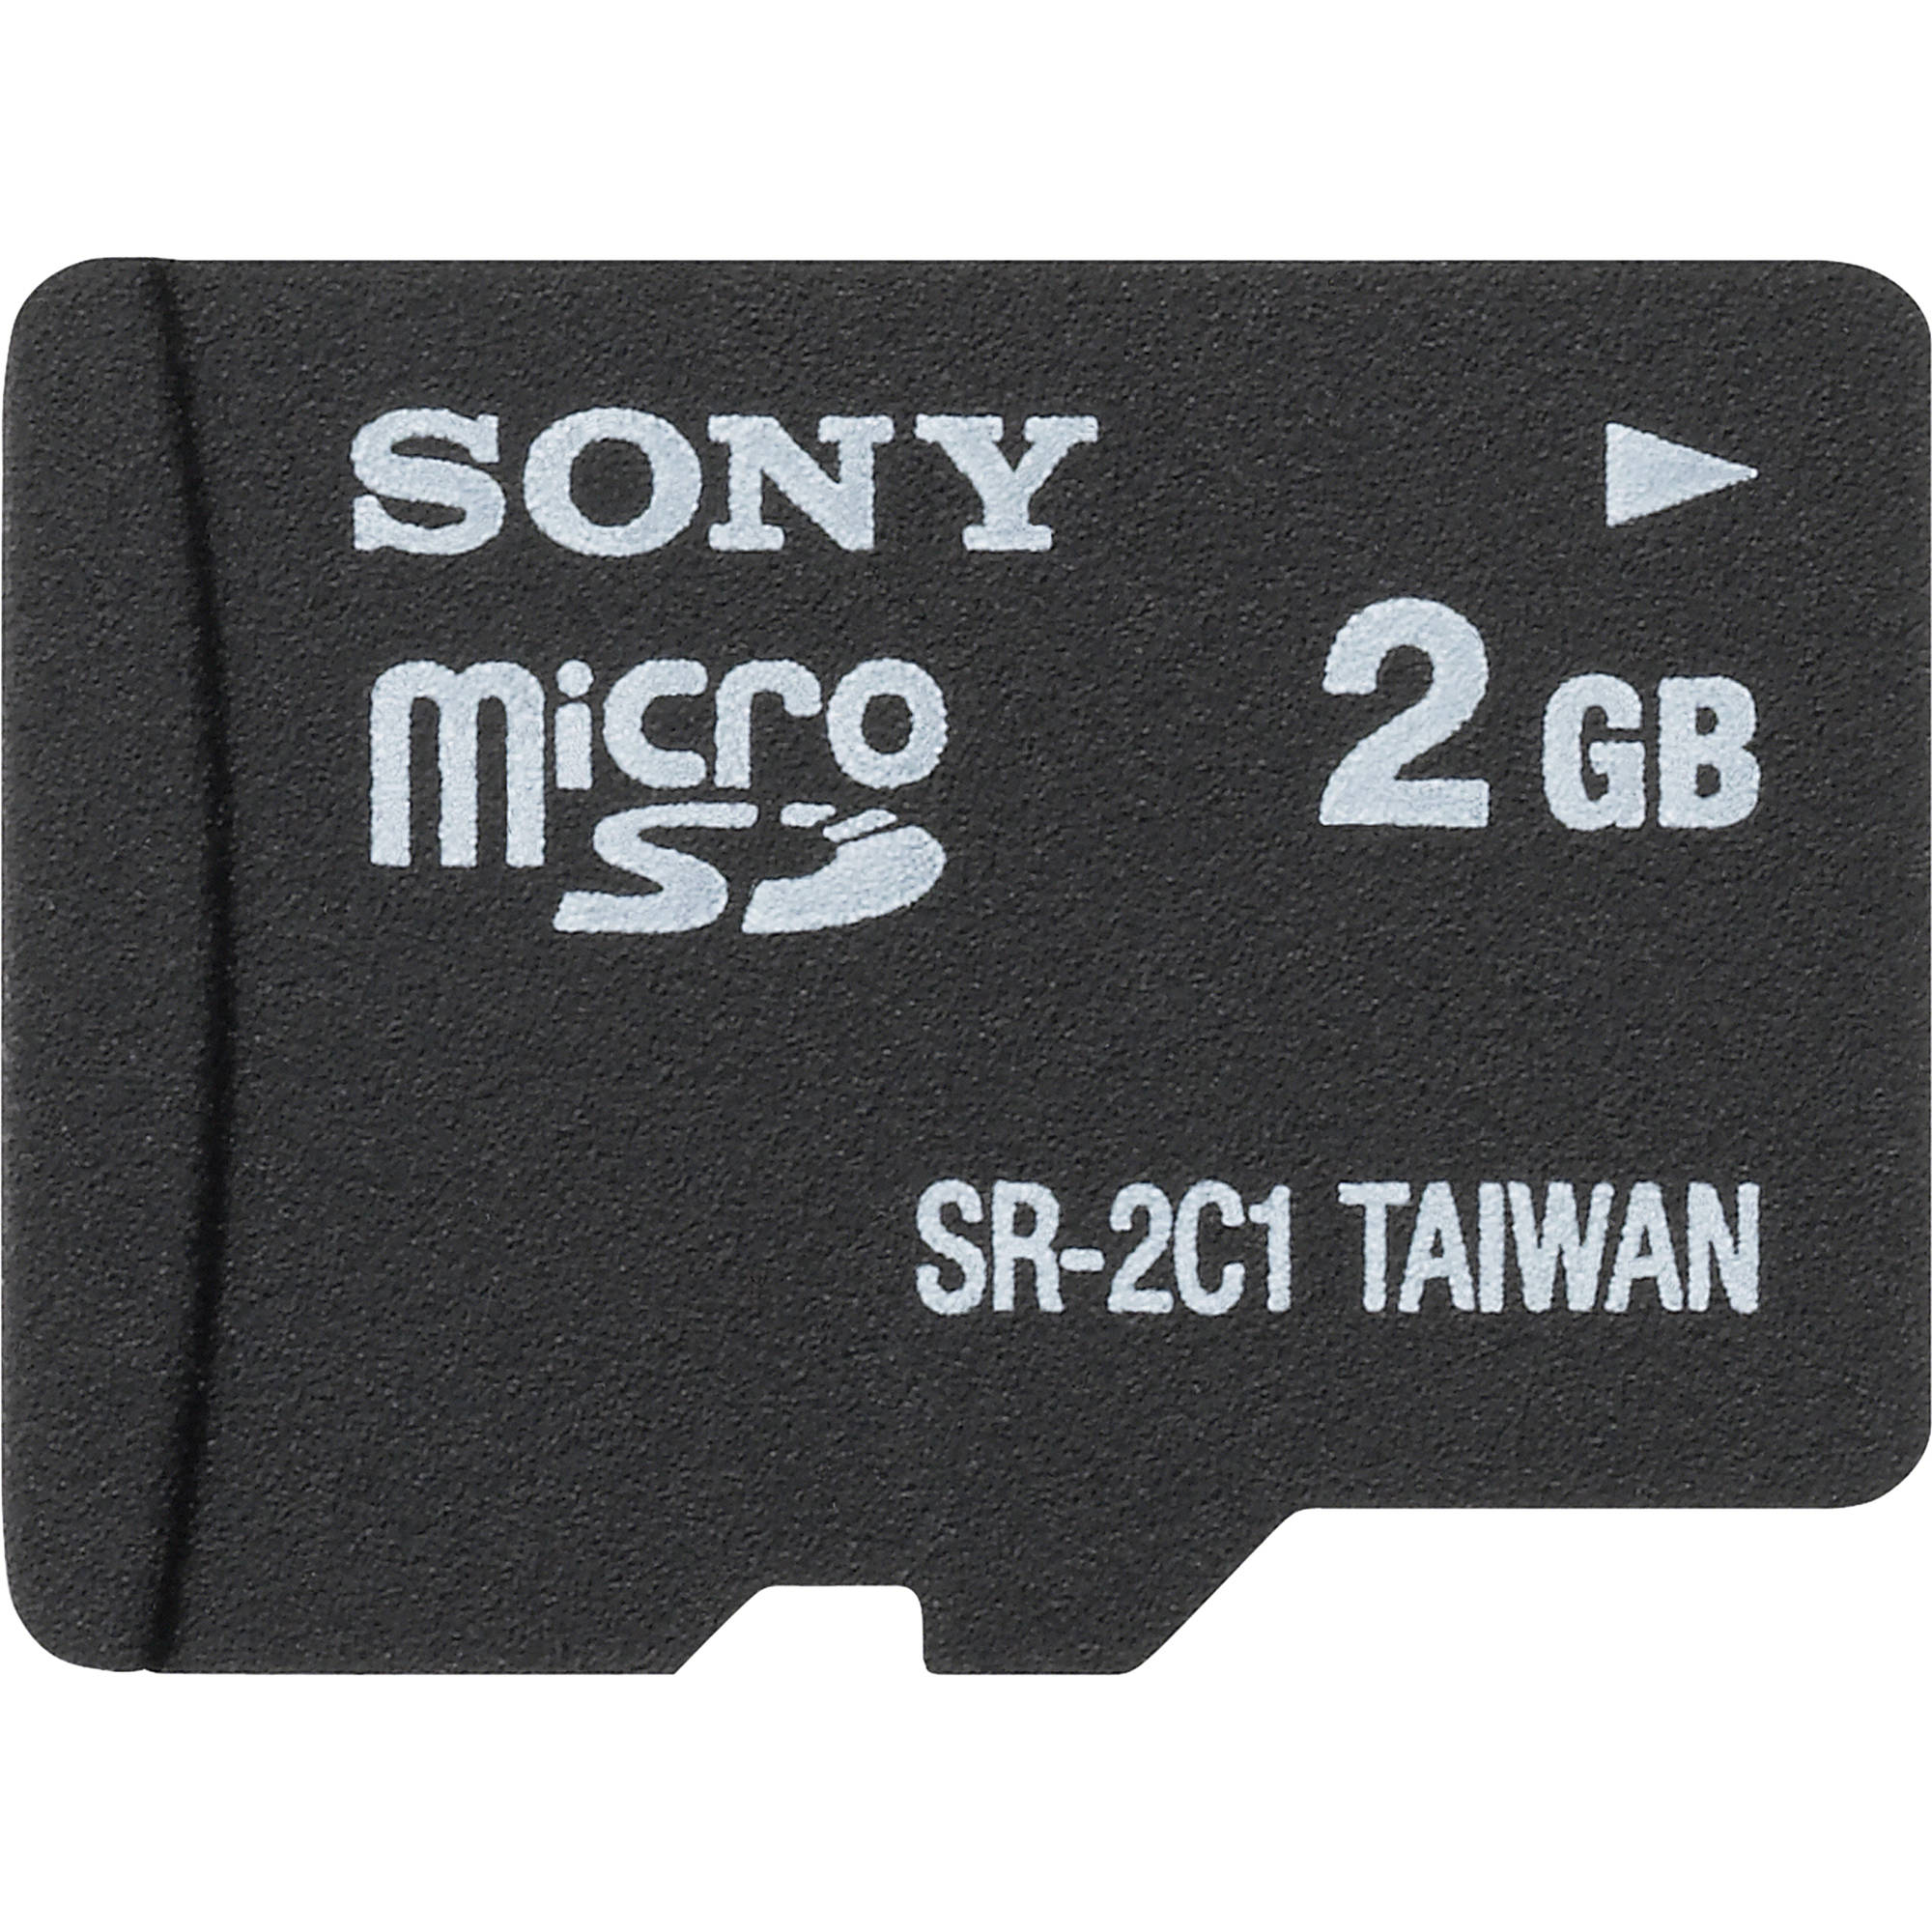 The Unexplained Mystery Into The 32gb Micro SD Card Uncovered